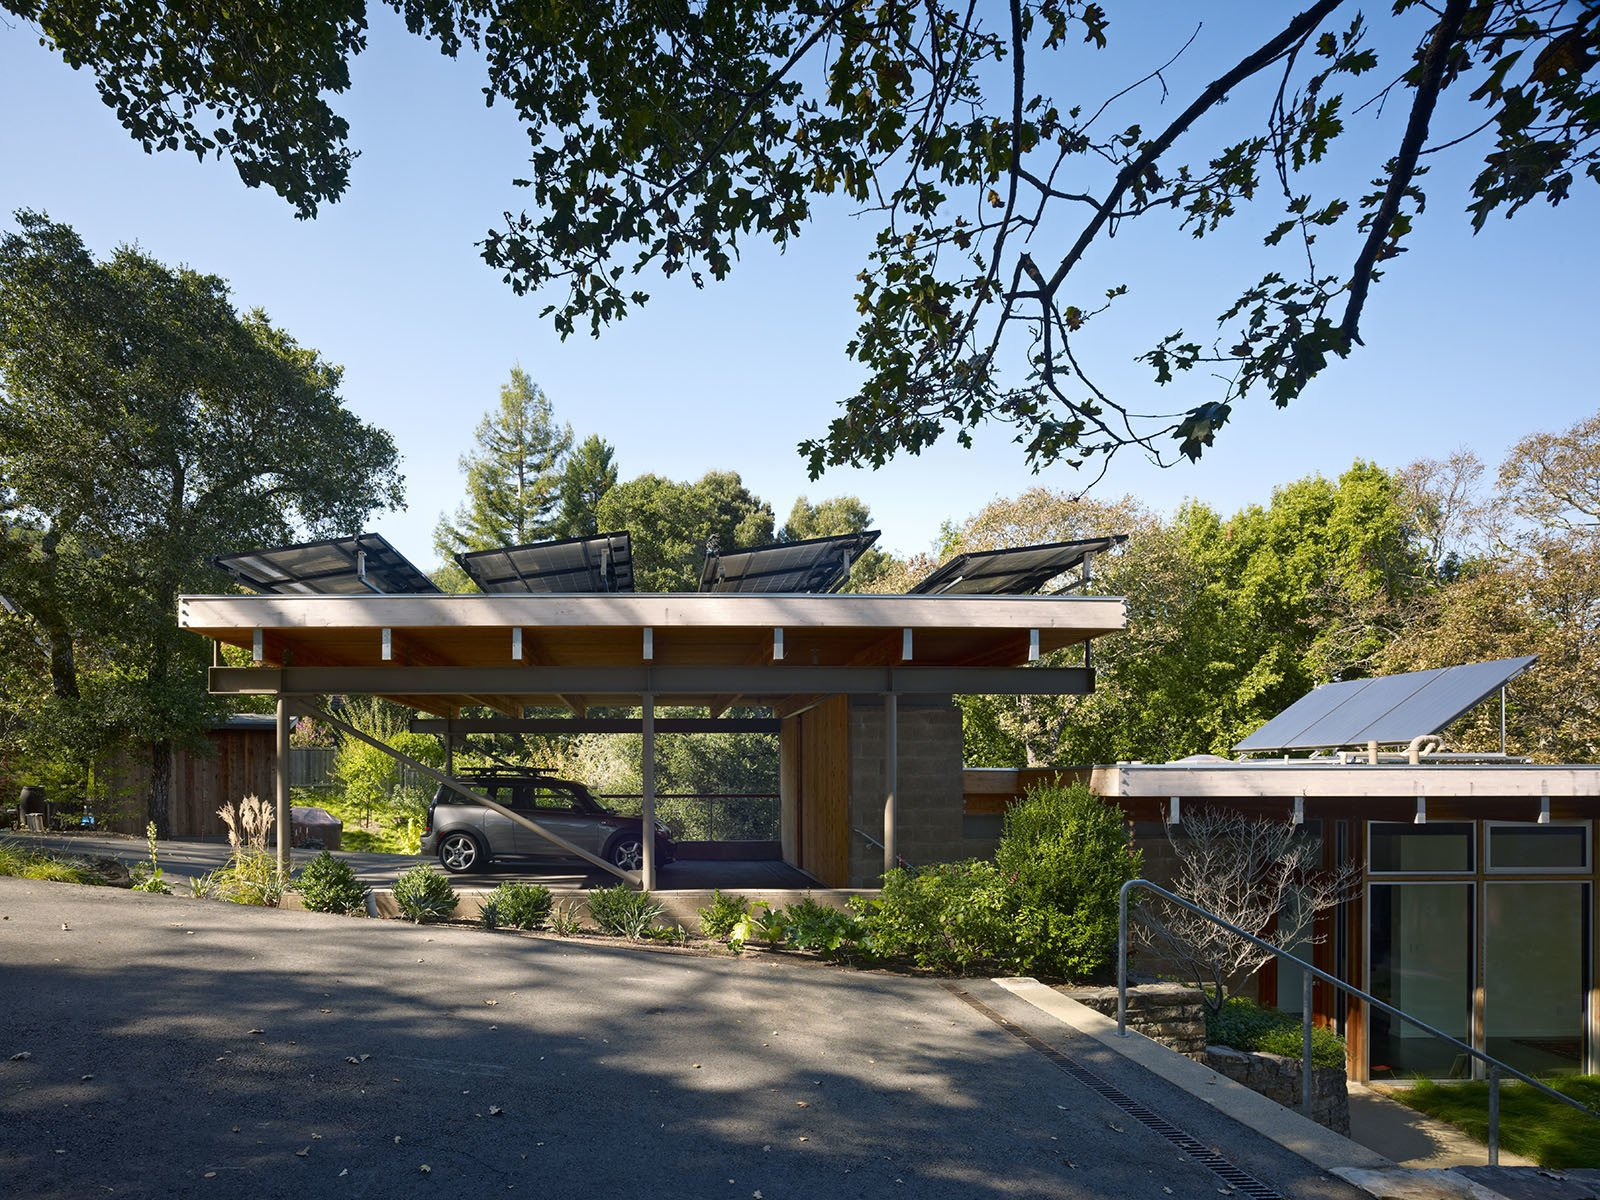 Pfau-Starr Residence by Pfau Long Architecture